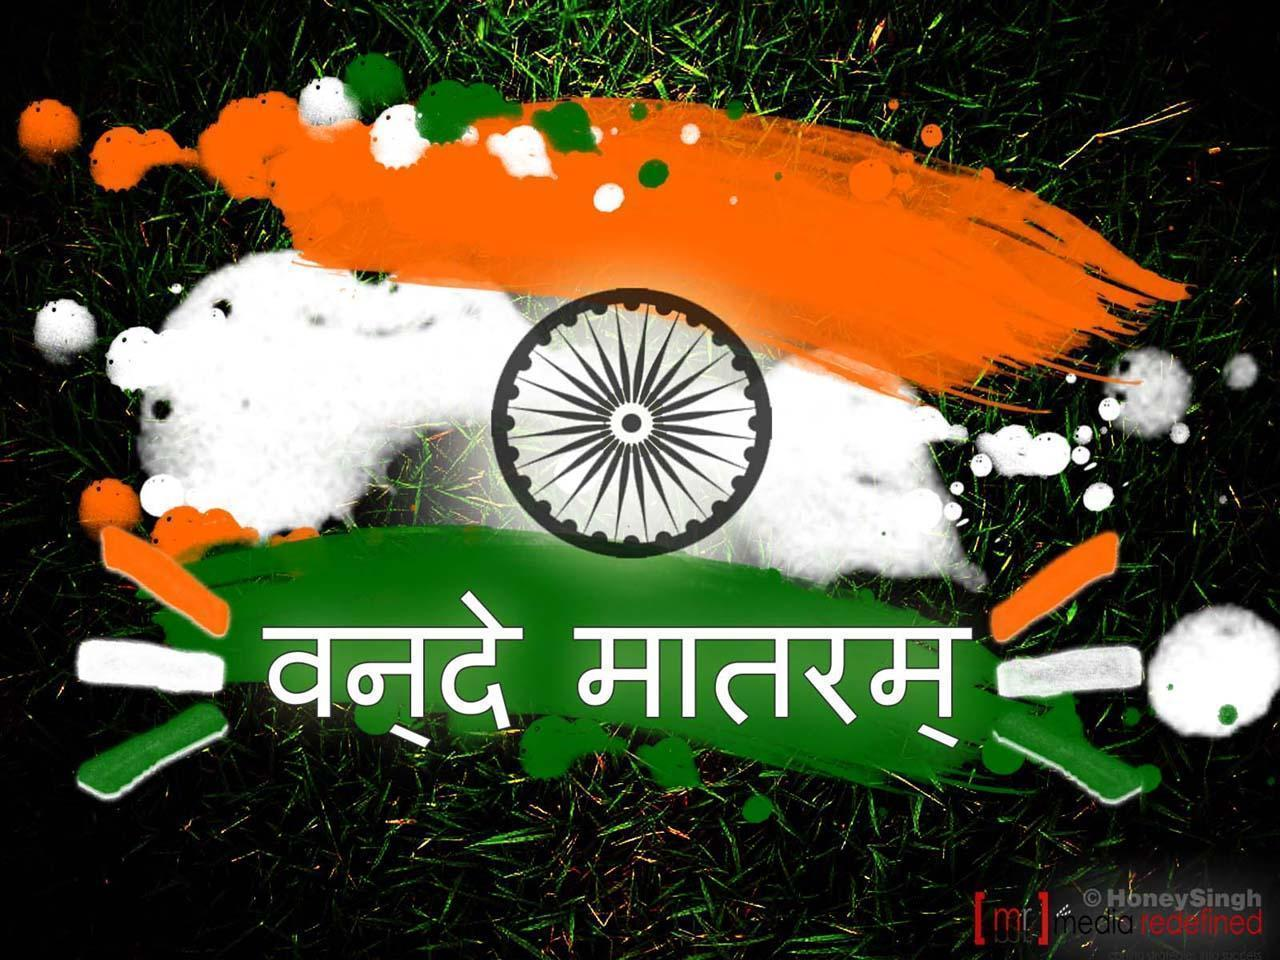 Hd wallpaper indian army - Independence Day Wallpapers 2015 With Indian Army Wallpaper Cave